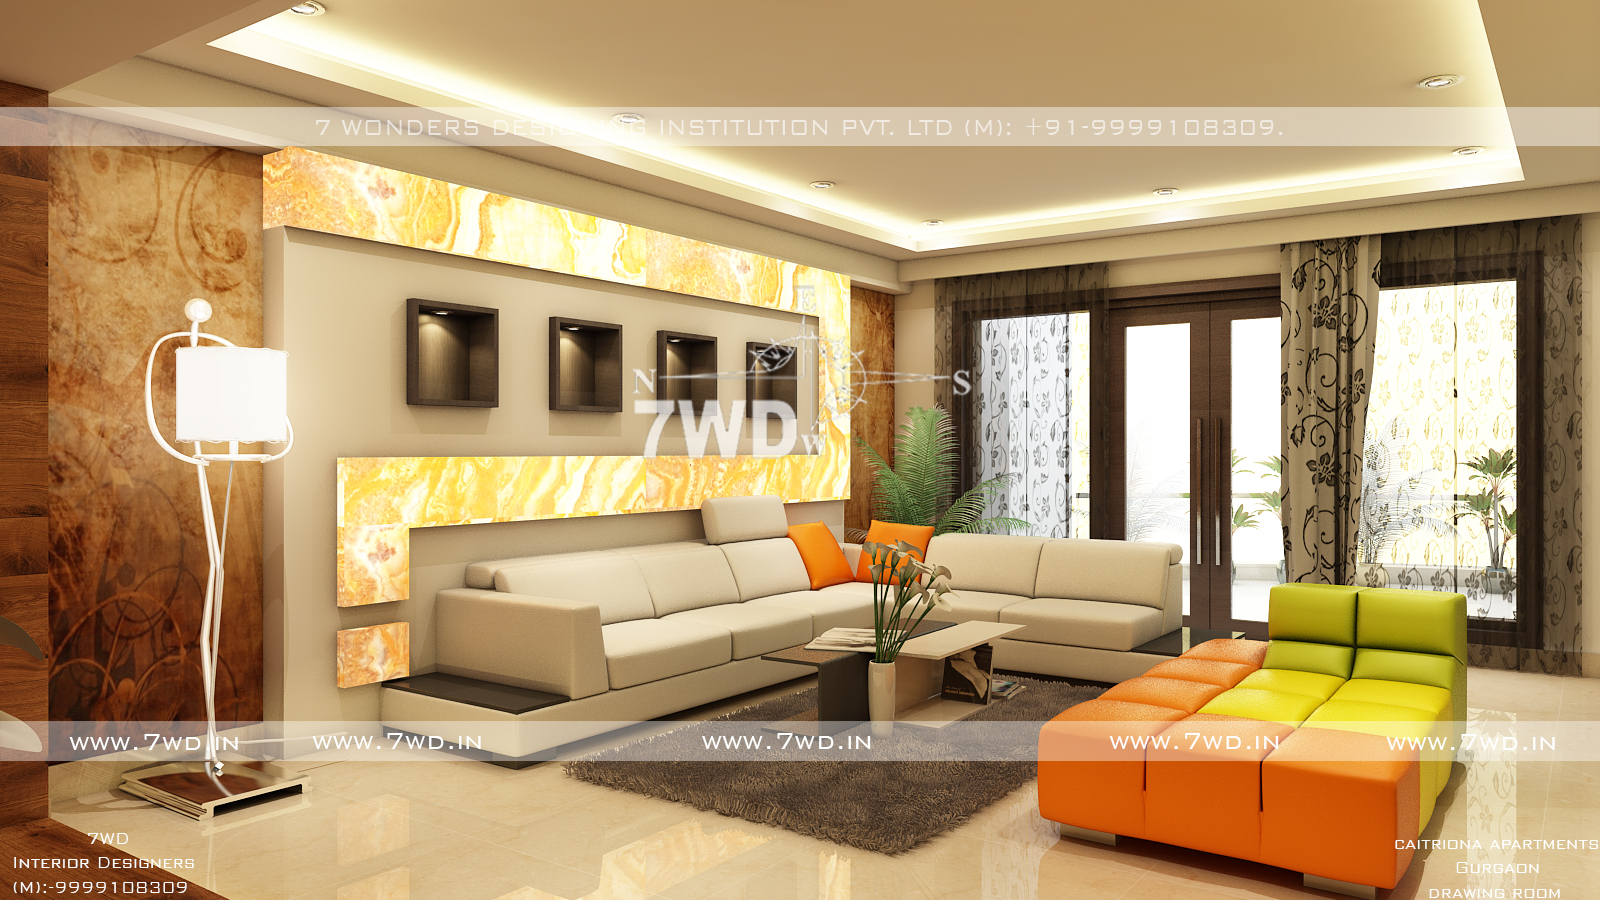 Interior Designers in Delhi NCR, interior designers in east delhi